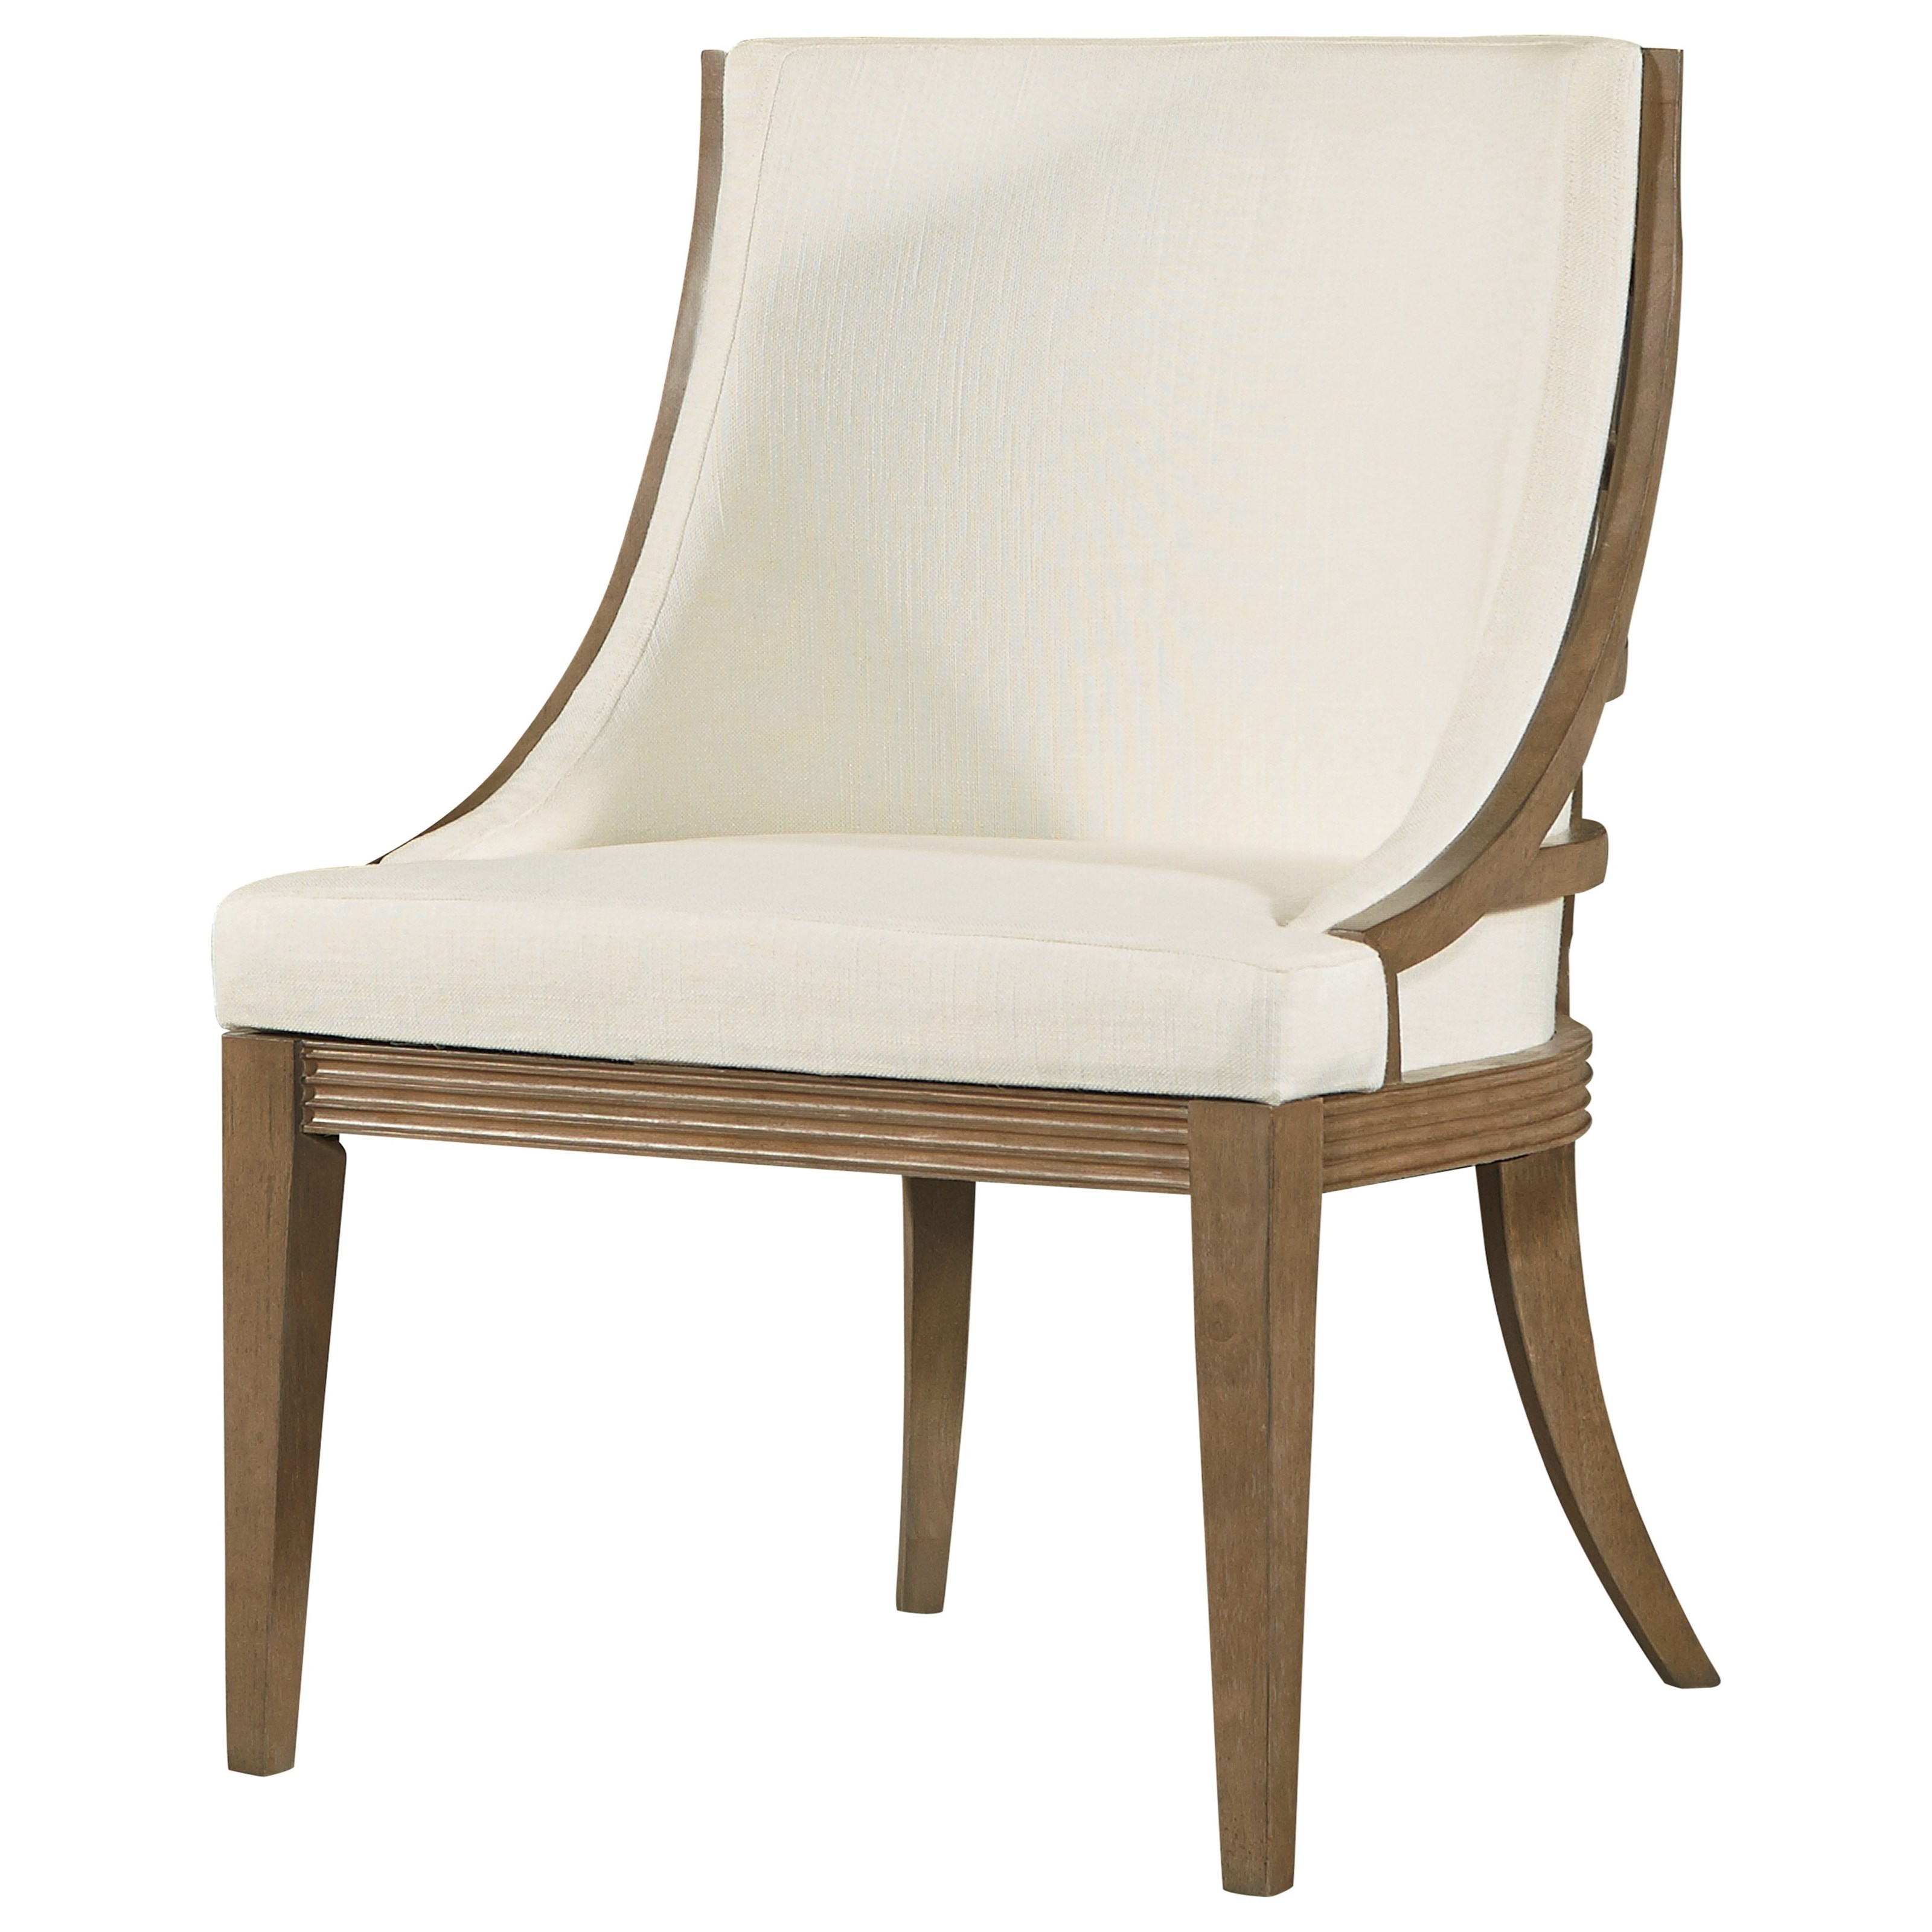 Universal synchronicity 628633 mid century modern for Upholstered dining chairs contemporary